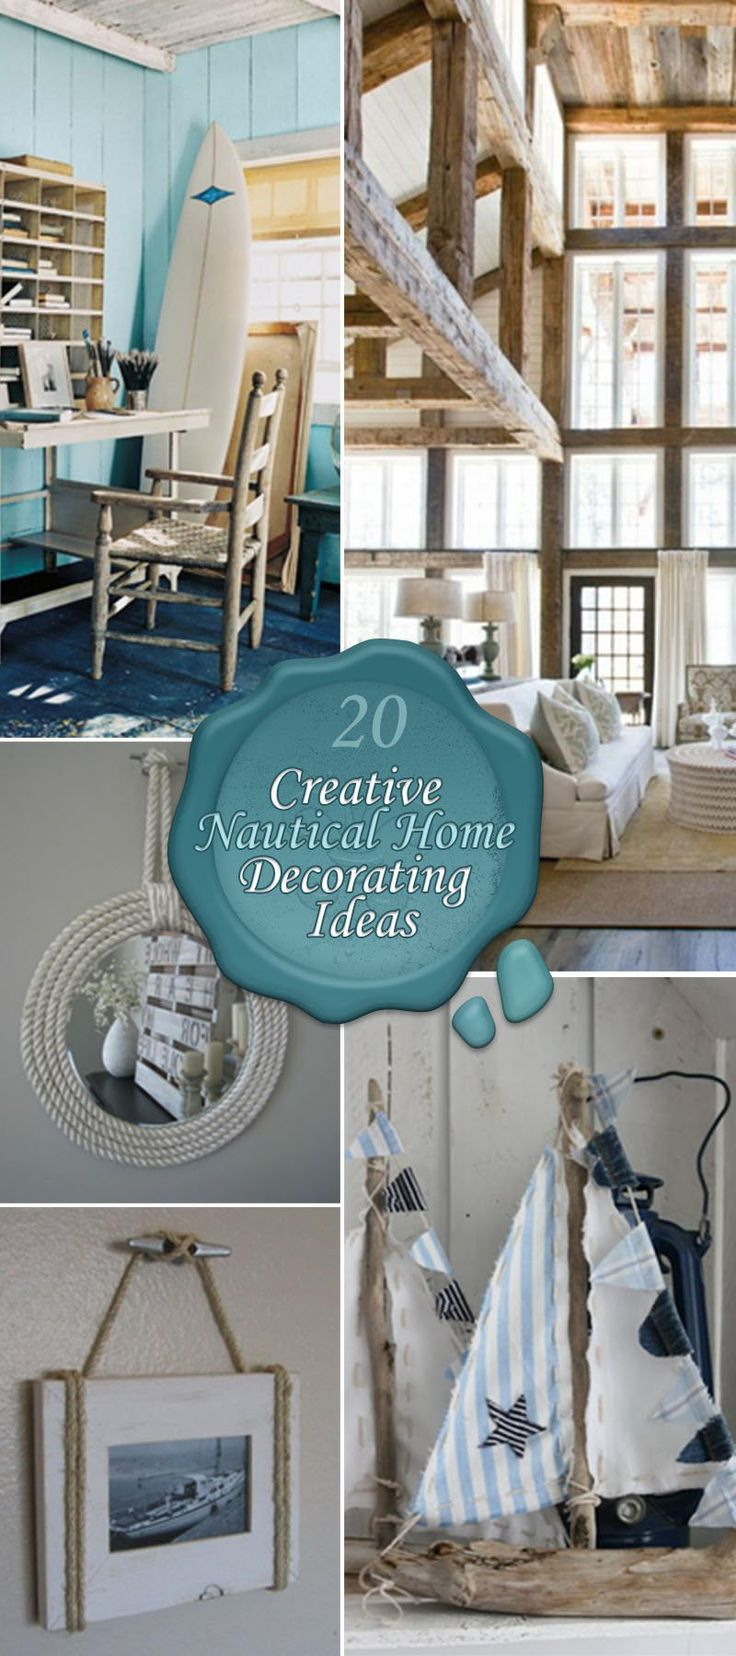 20 very creative nautical home decorating ideas - Nautical Design Ideas